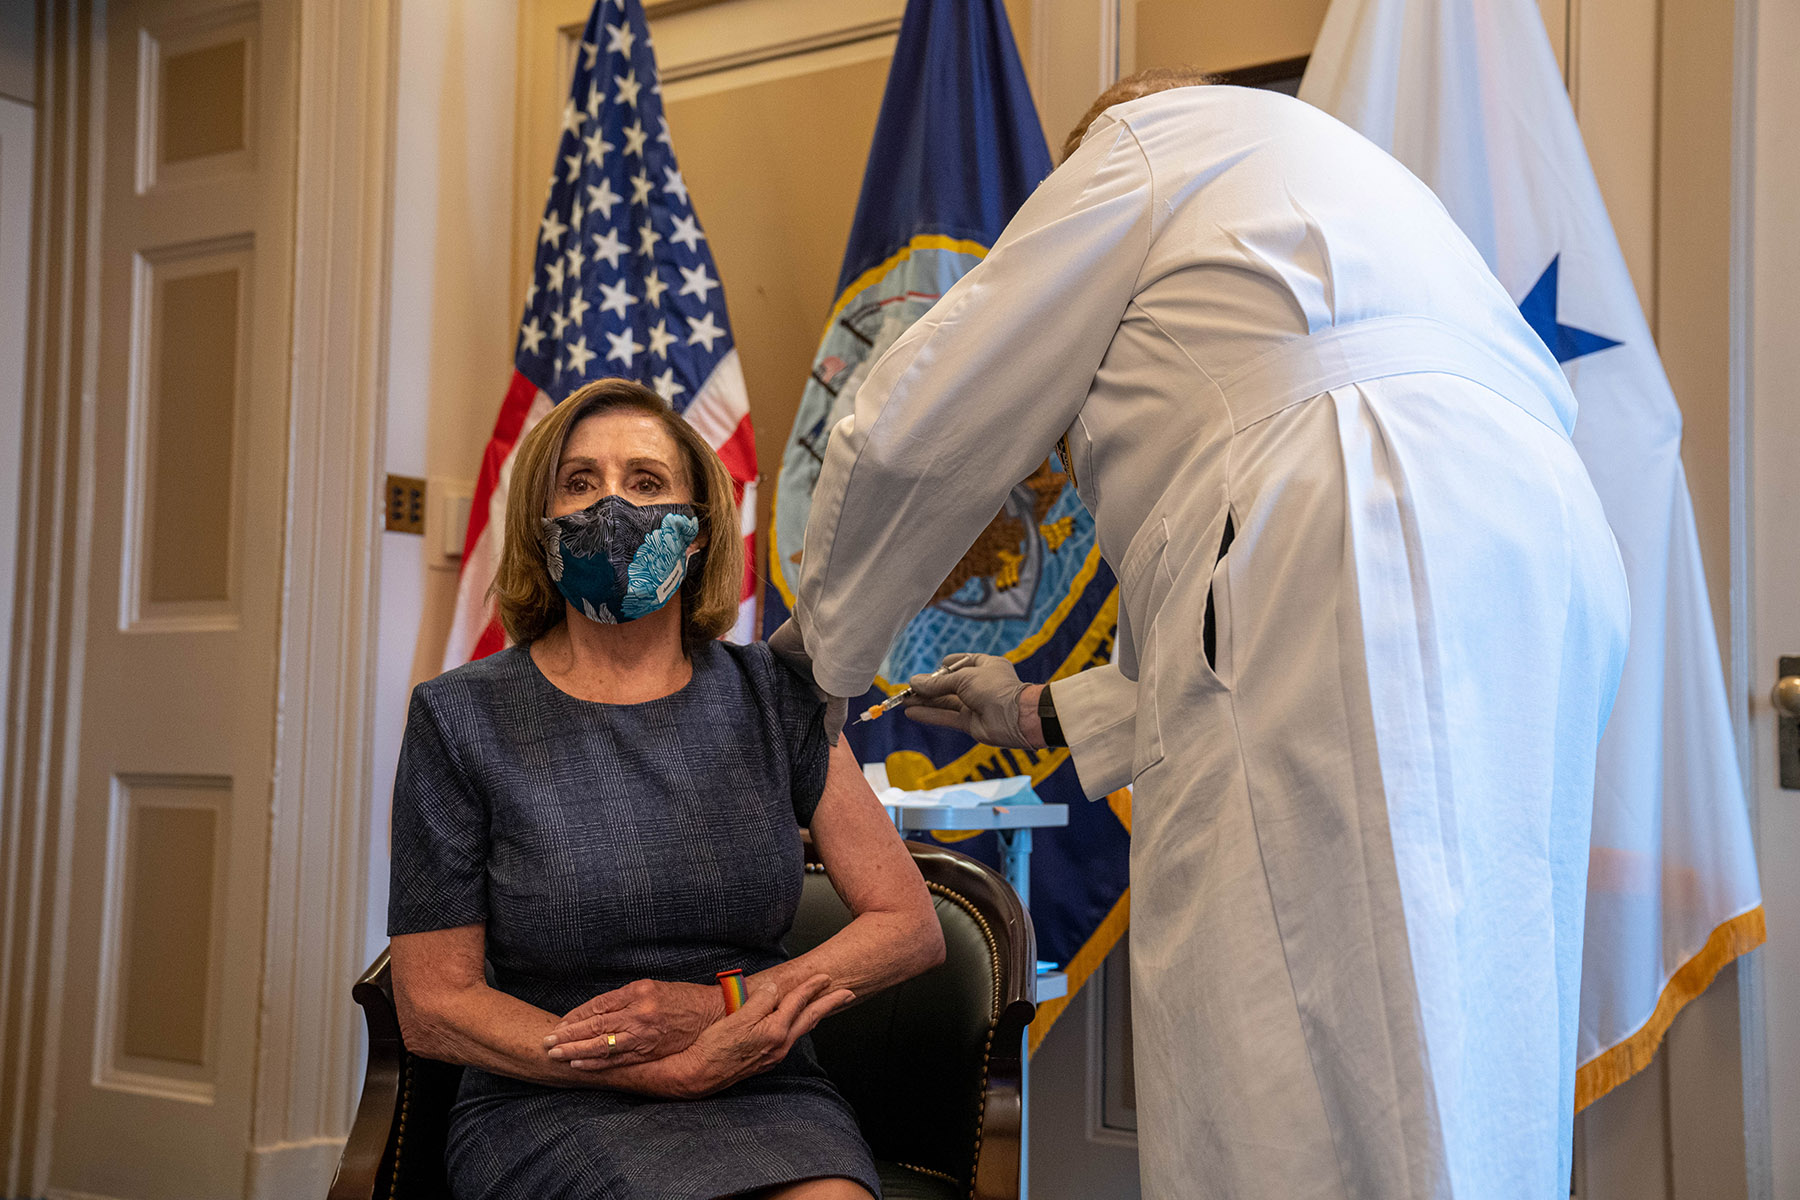 U.S. House Speaker Nancy Pelosi receives the Pfizer-BioNTech SE Covid-19 vaccine at the U.S. Capitol in Washington DC, on Friday, December 18.